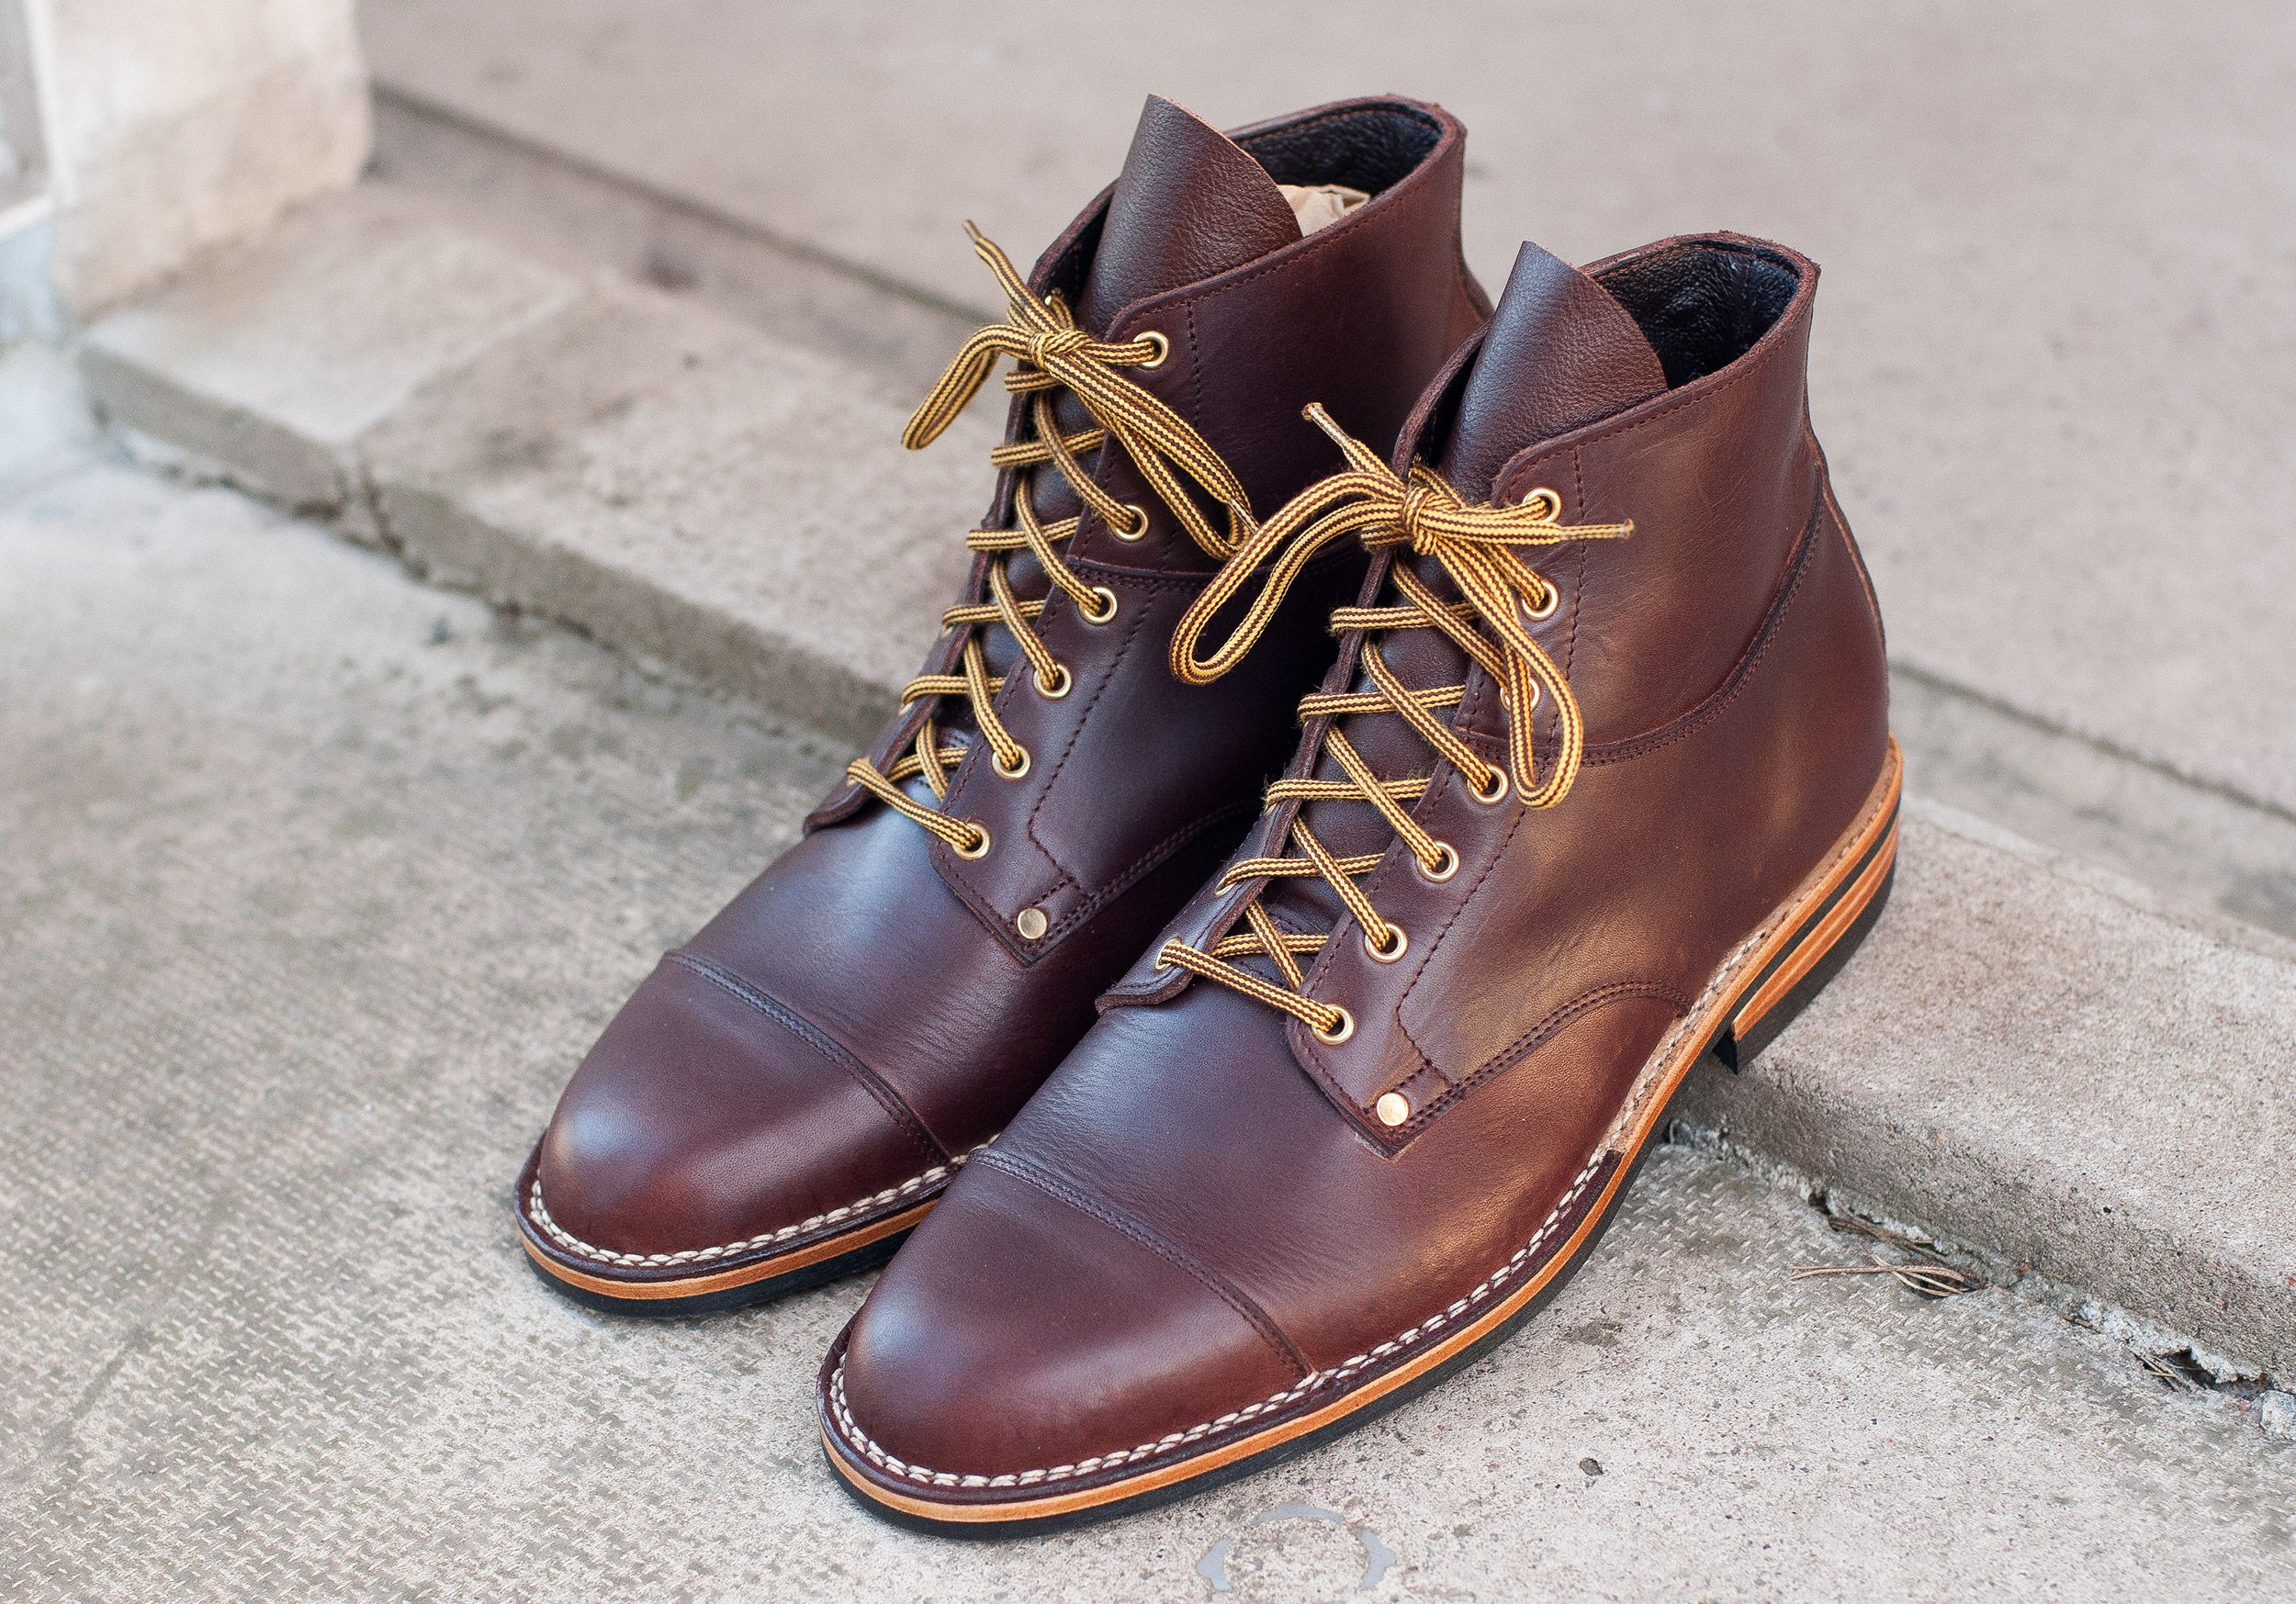 fc78f3d9637 Østmo boots | Shoes | Boots, Shoes, Timberland boots